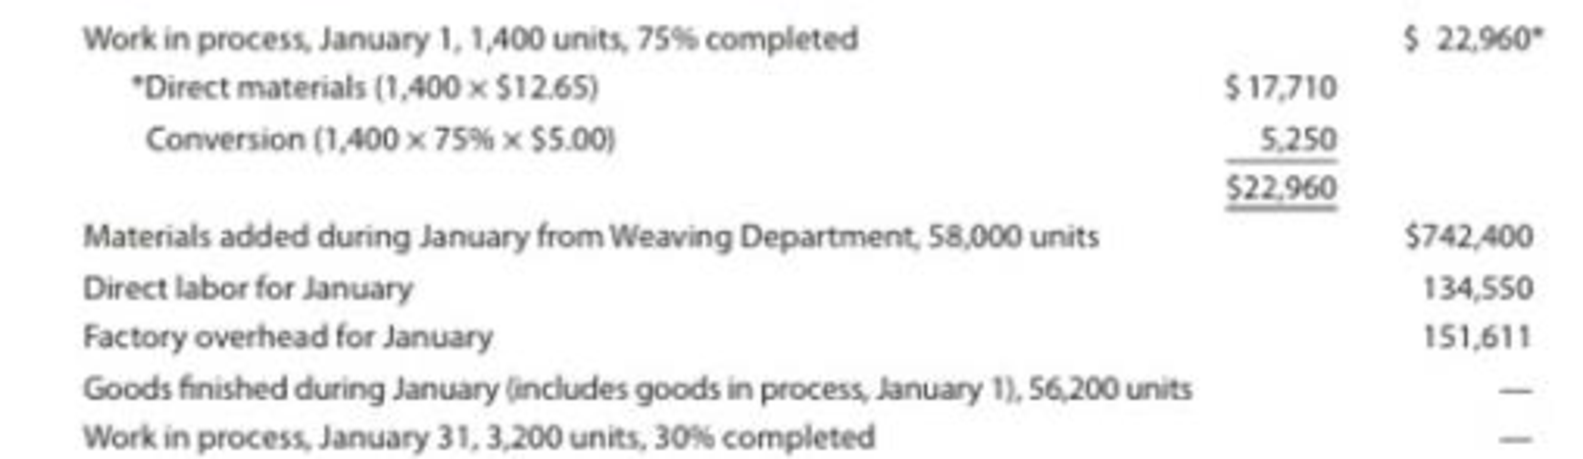 Chapter 17, Problem 17E, Cost of Production report The Cutting Department of Karachi Carpet Company provides the following